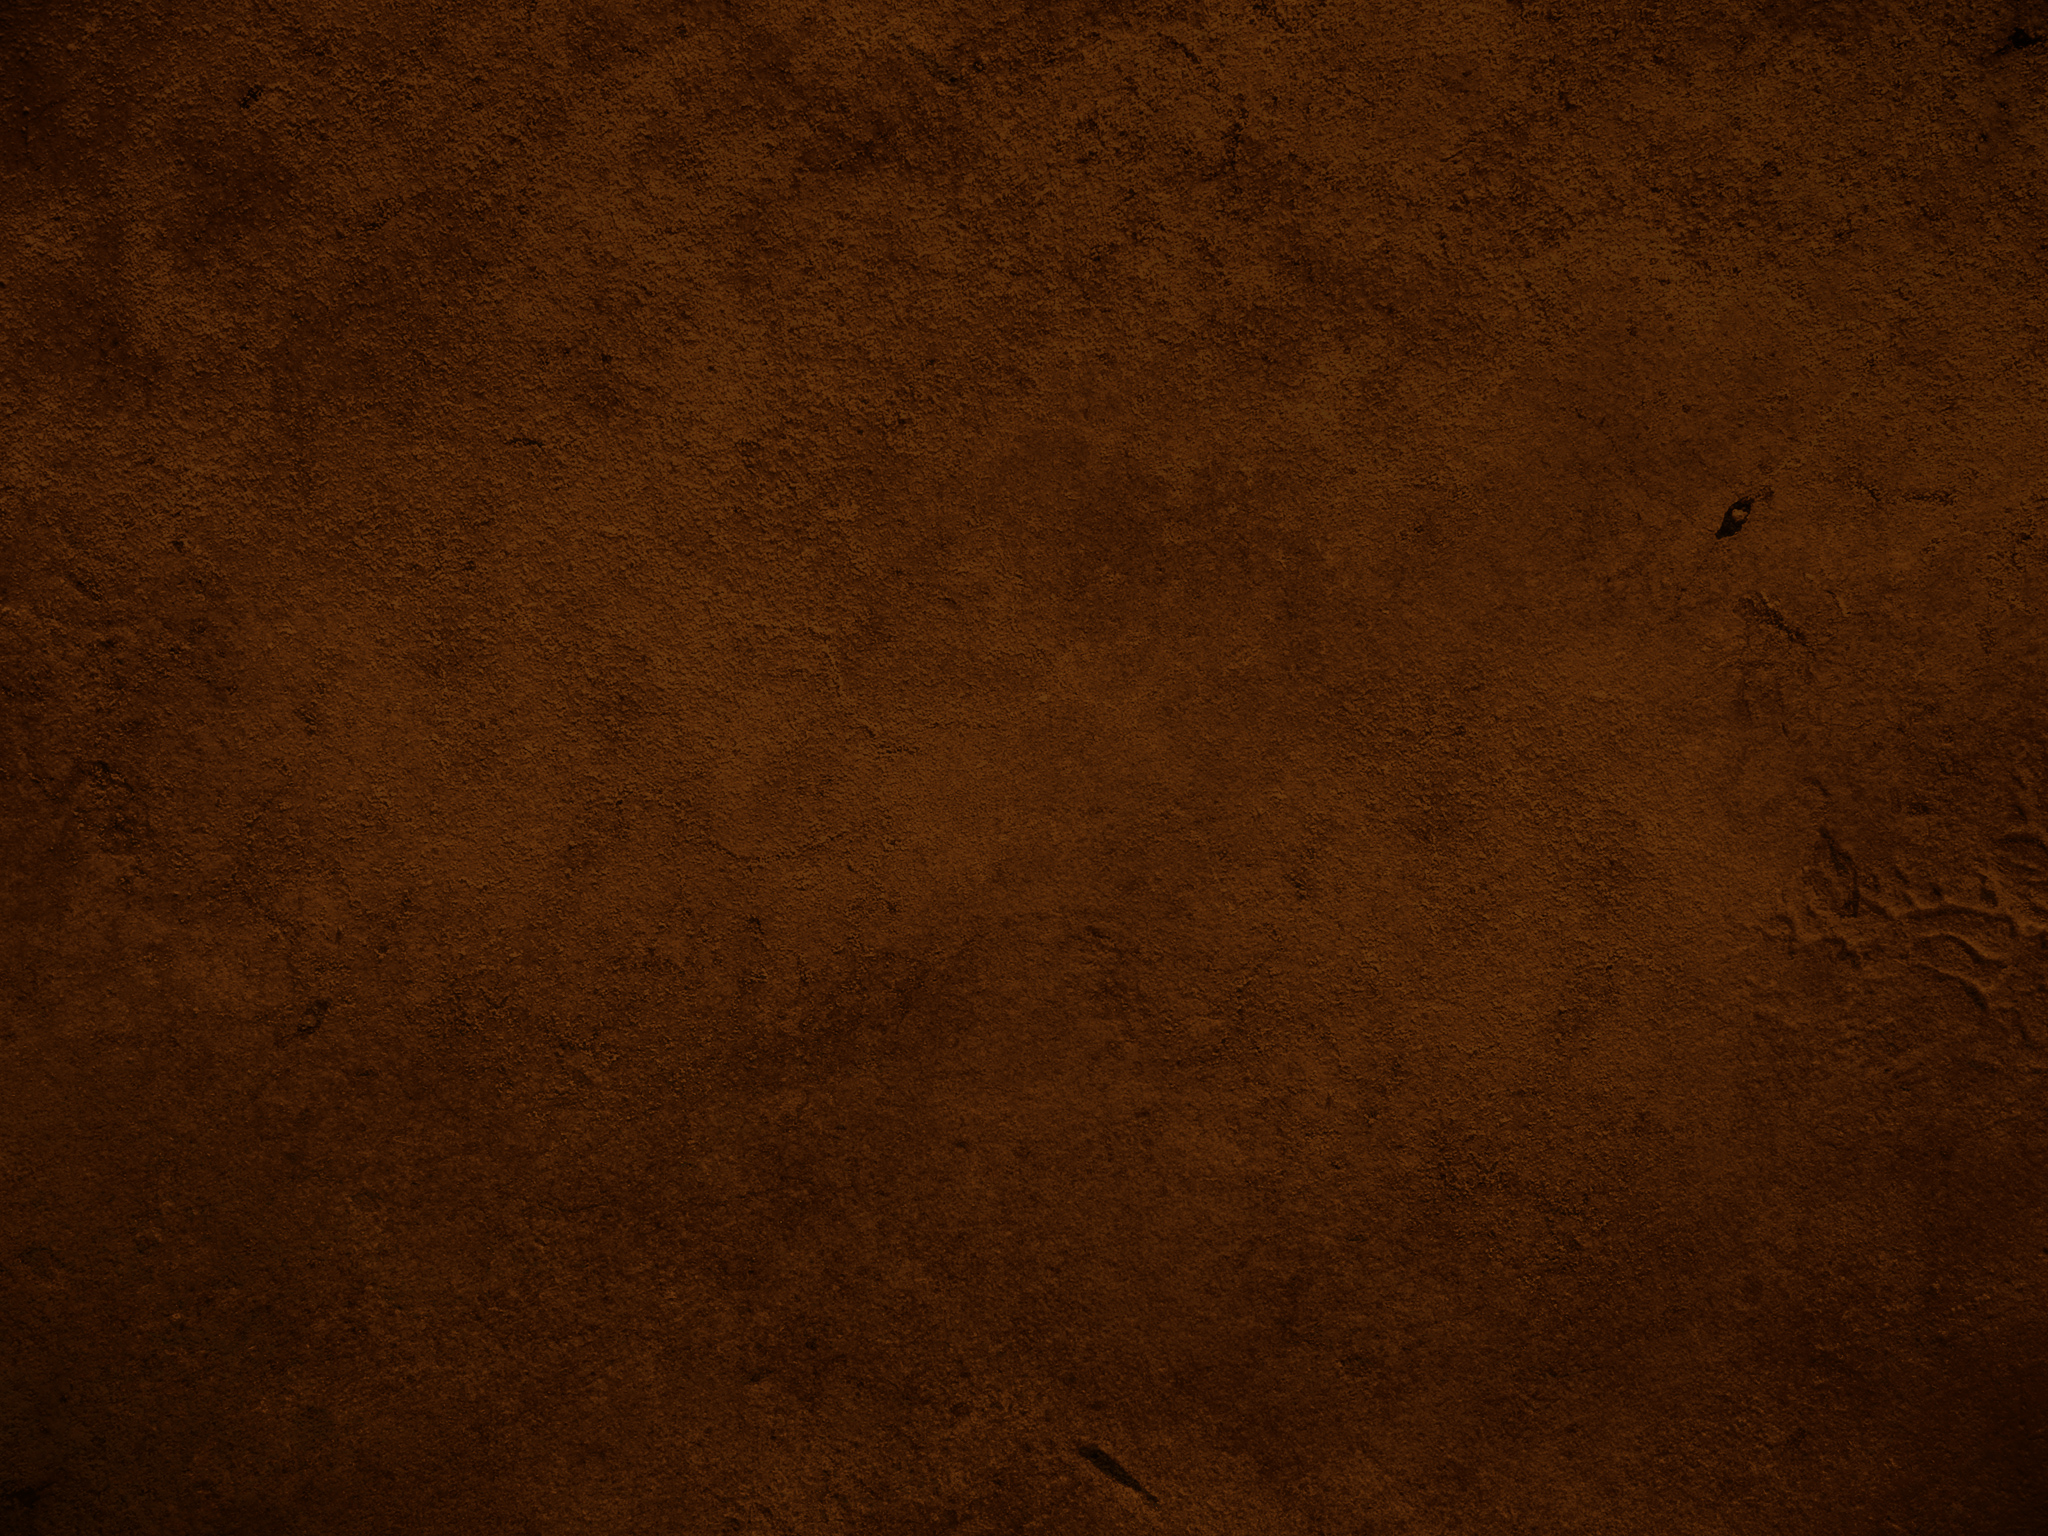 One Color Brown Background   2048x1536 Wallpaper   Ecopetitcat 2048x1536